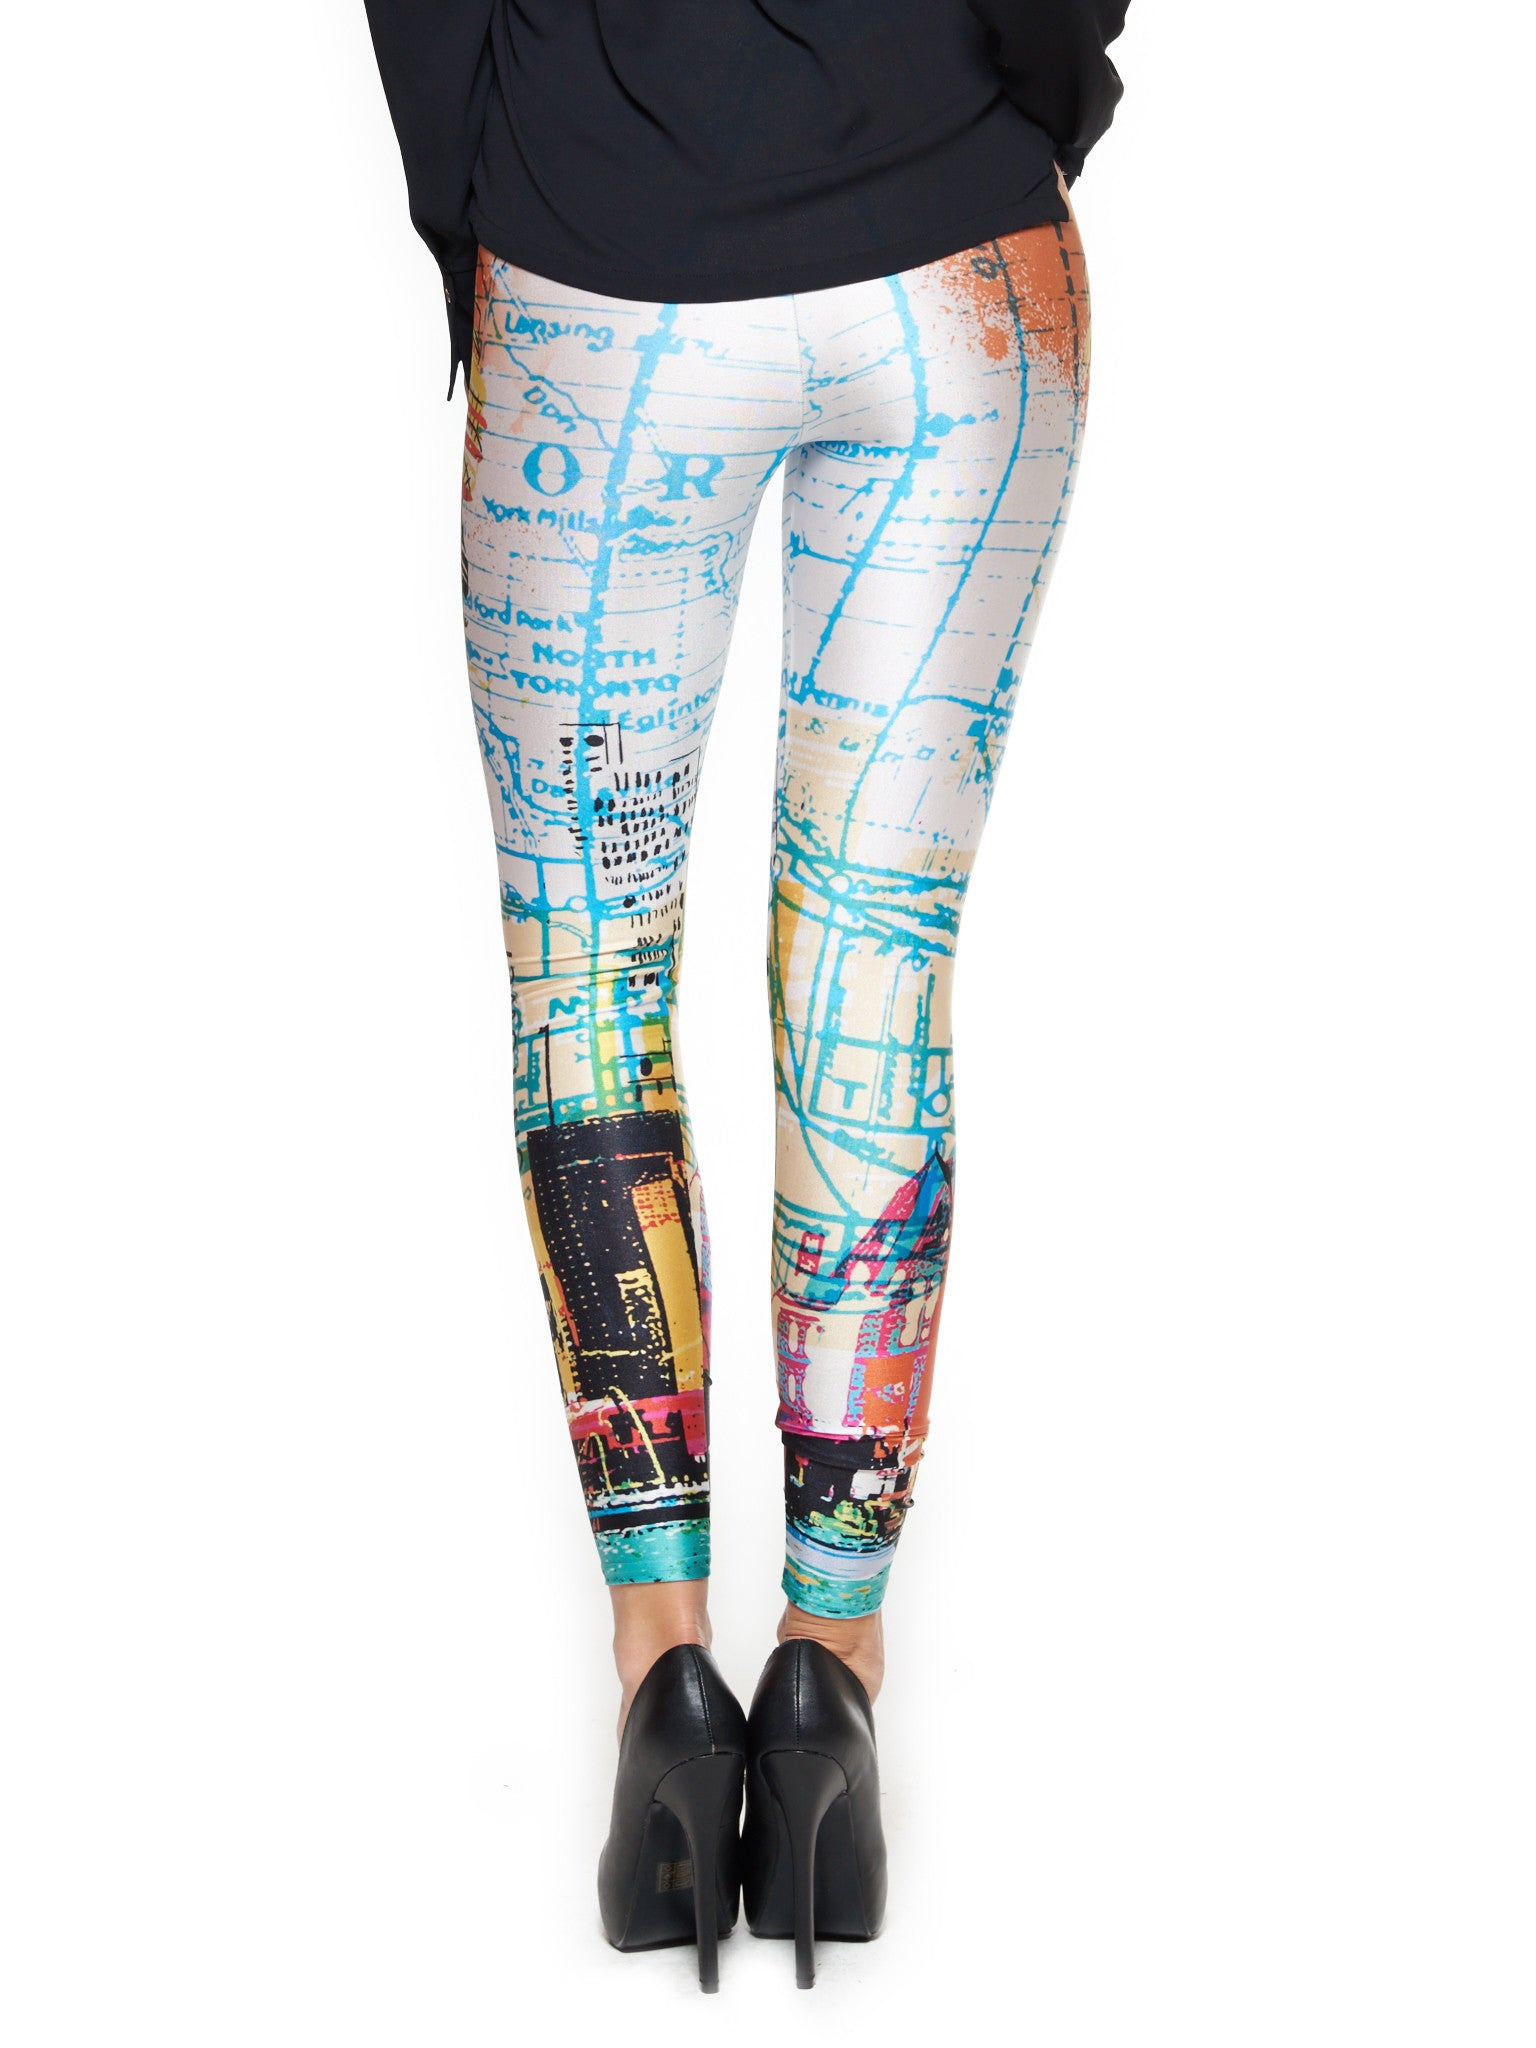 Toronto Skyline Queen West Leggings - Nuvango  - 3